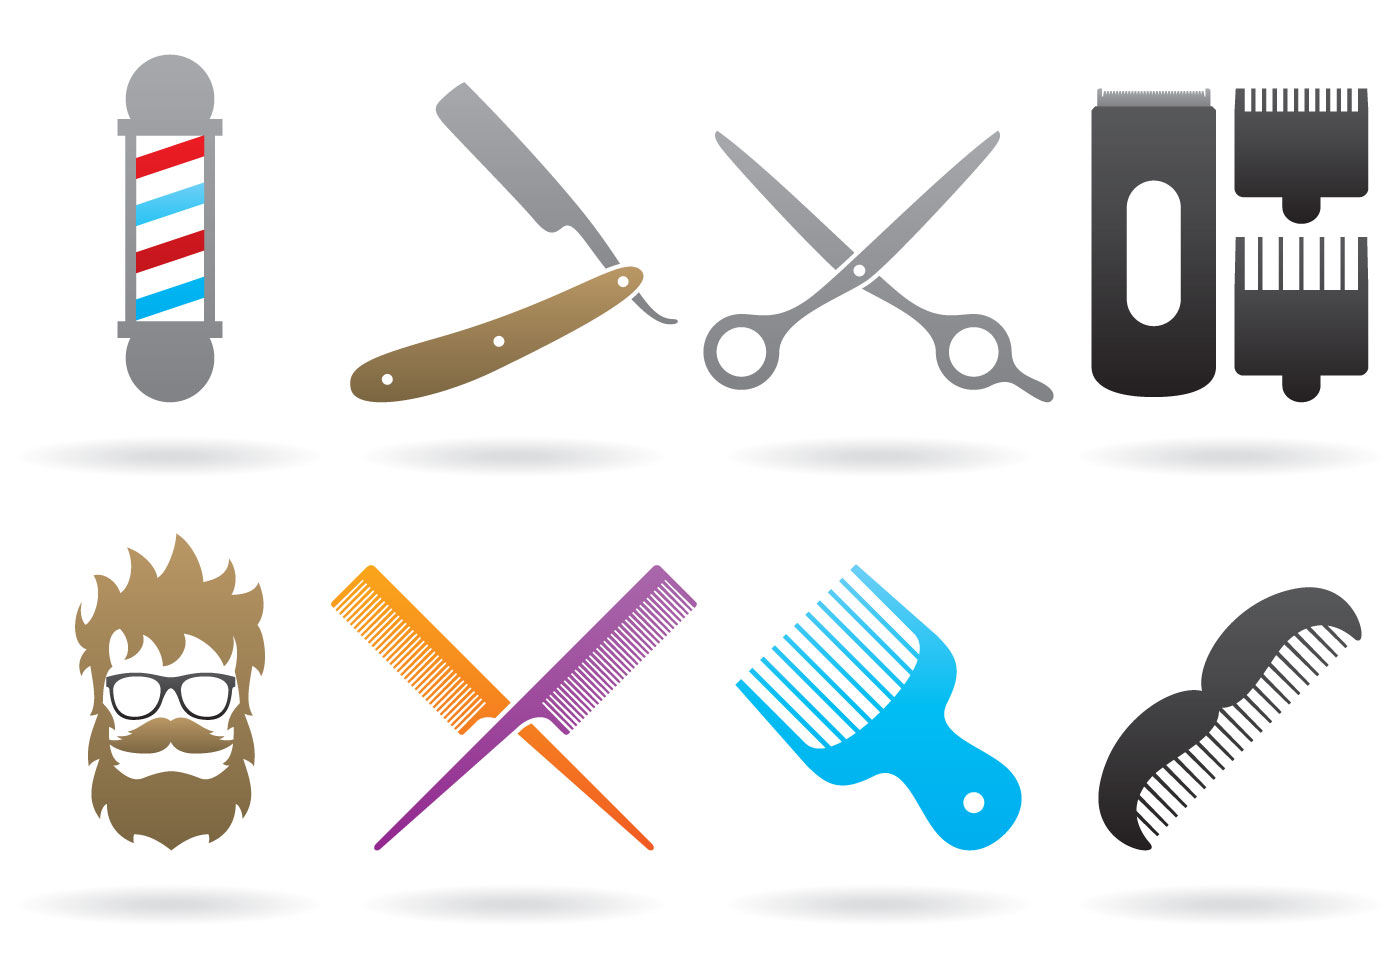 Barber Logos - Download Free Vector Art, Stock Graphics ...